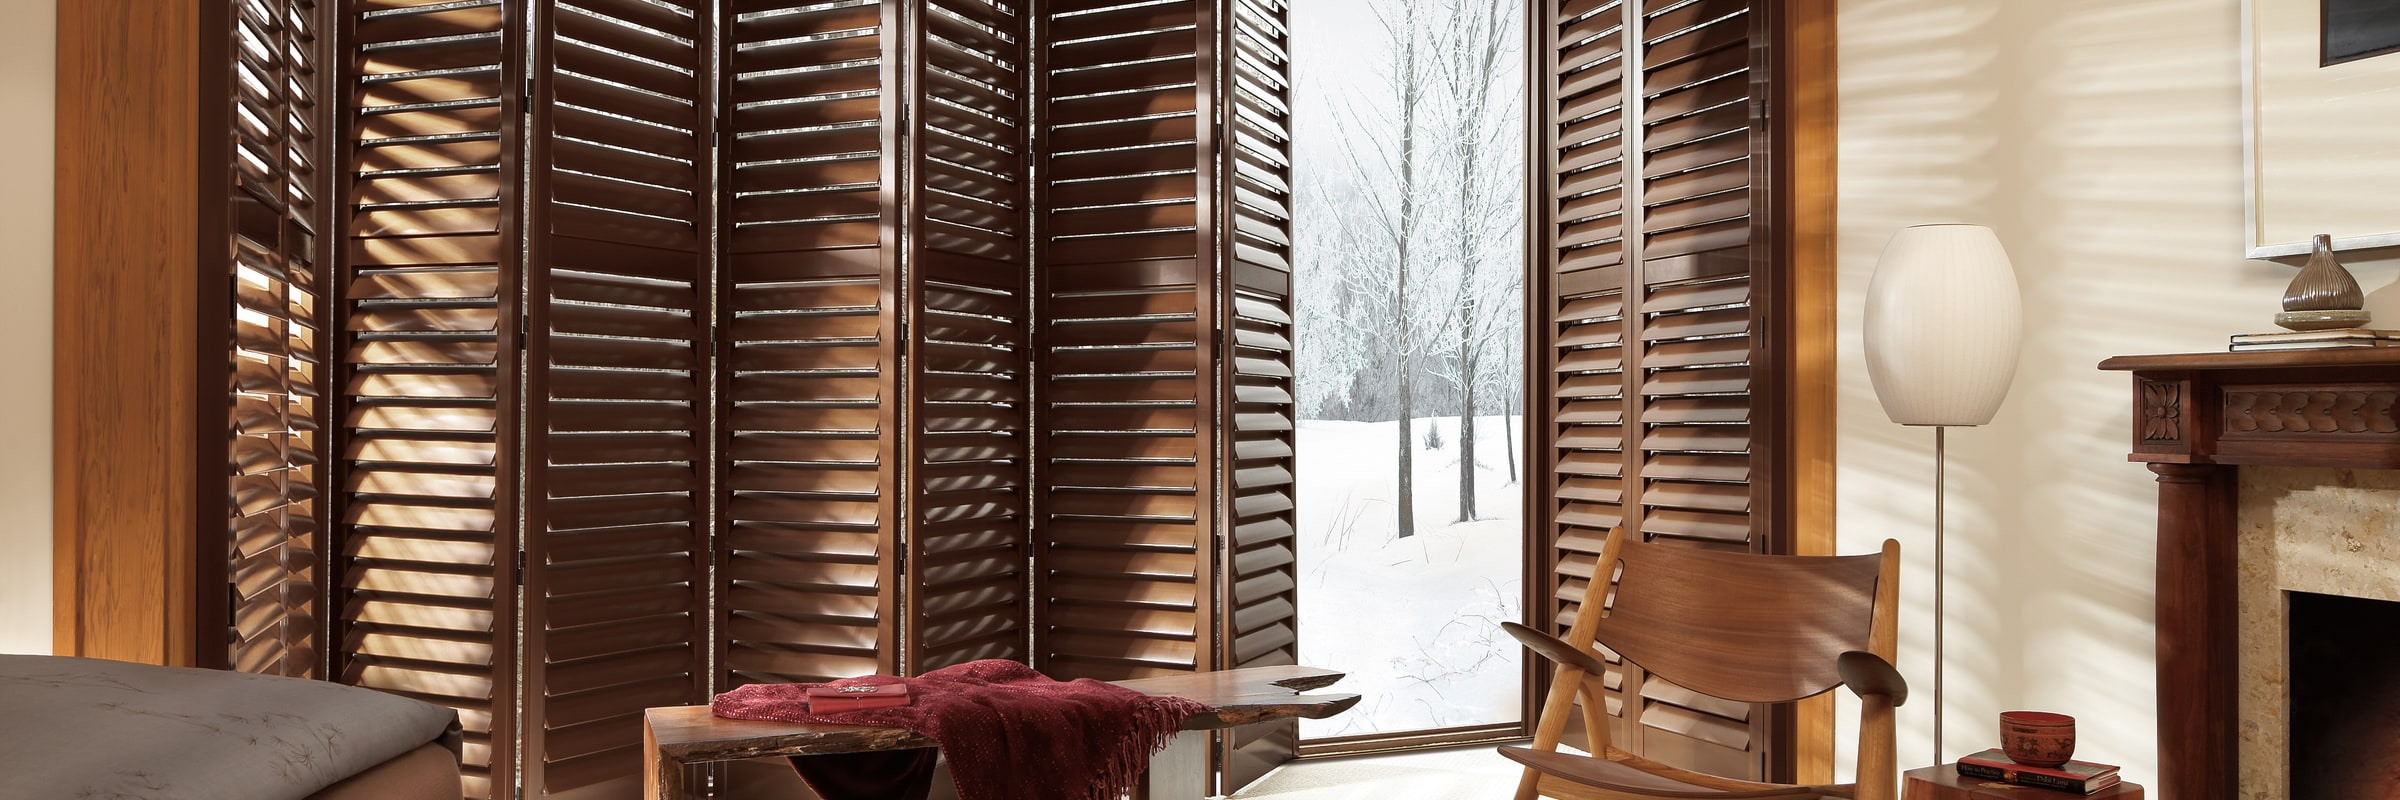 interior wood hardware jdnw shutters sliding listing window rustic windows for wooden il farmhouse style packages available fullxfull shutter barn door